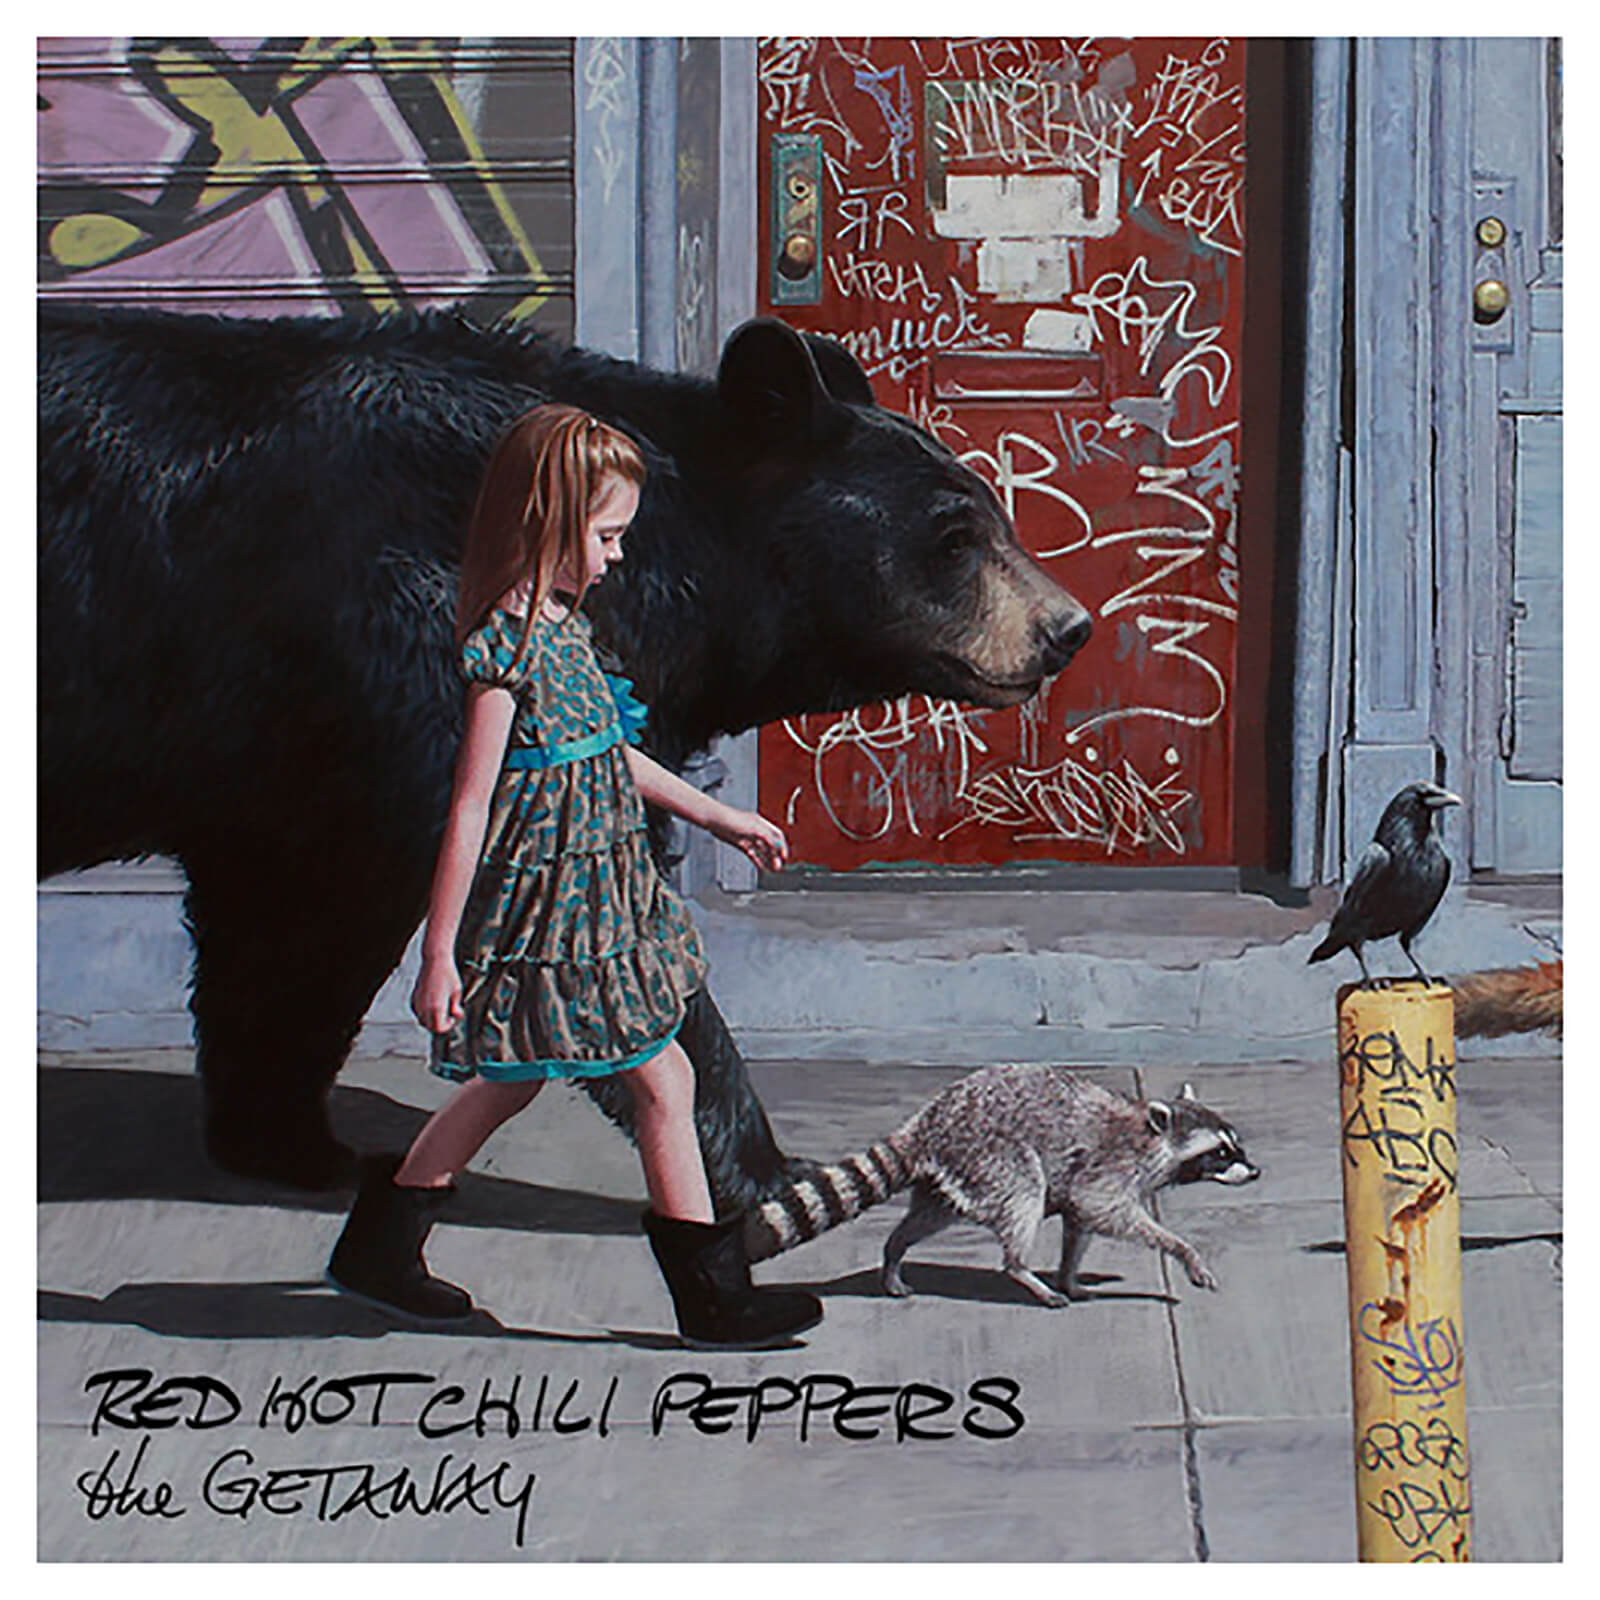 Red Hot Chili Peppers - Getaway - Vinyl